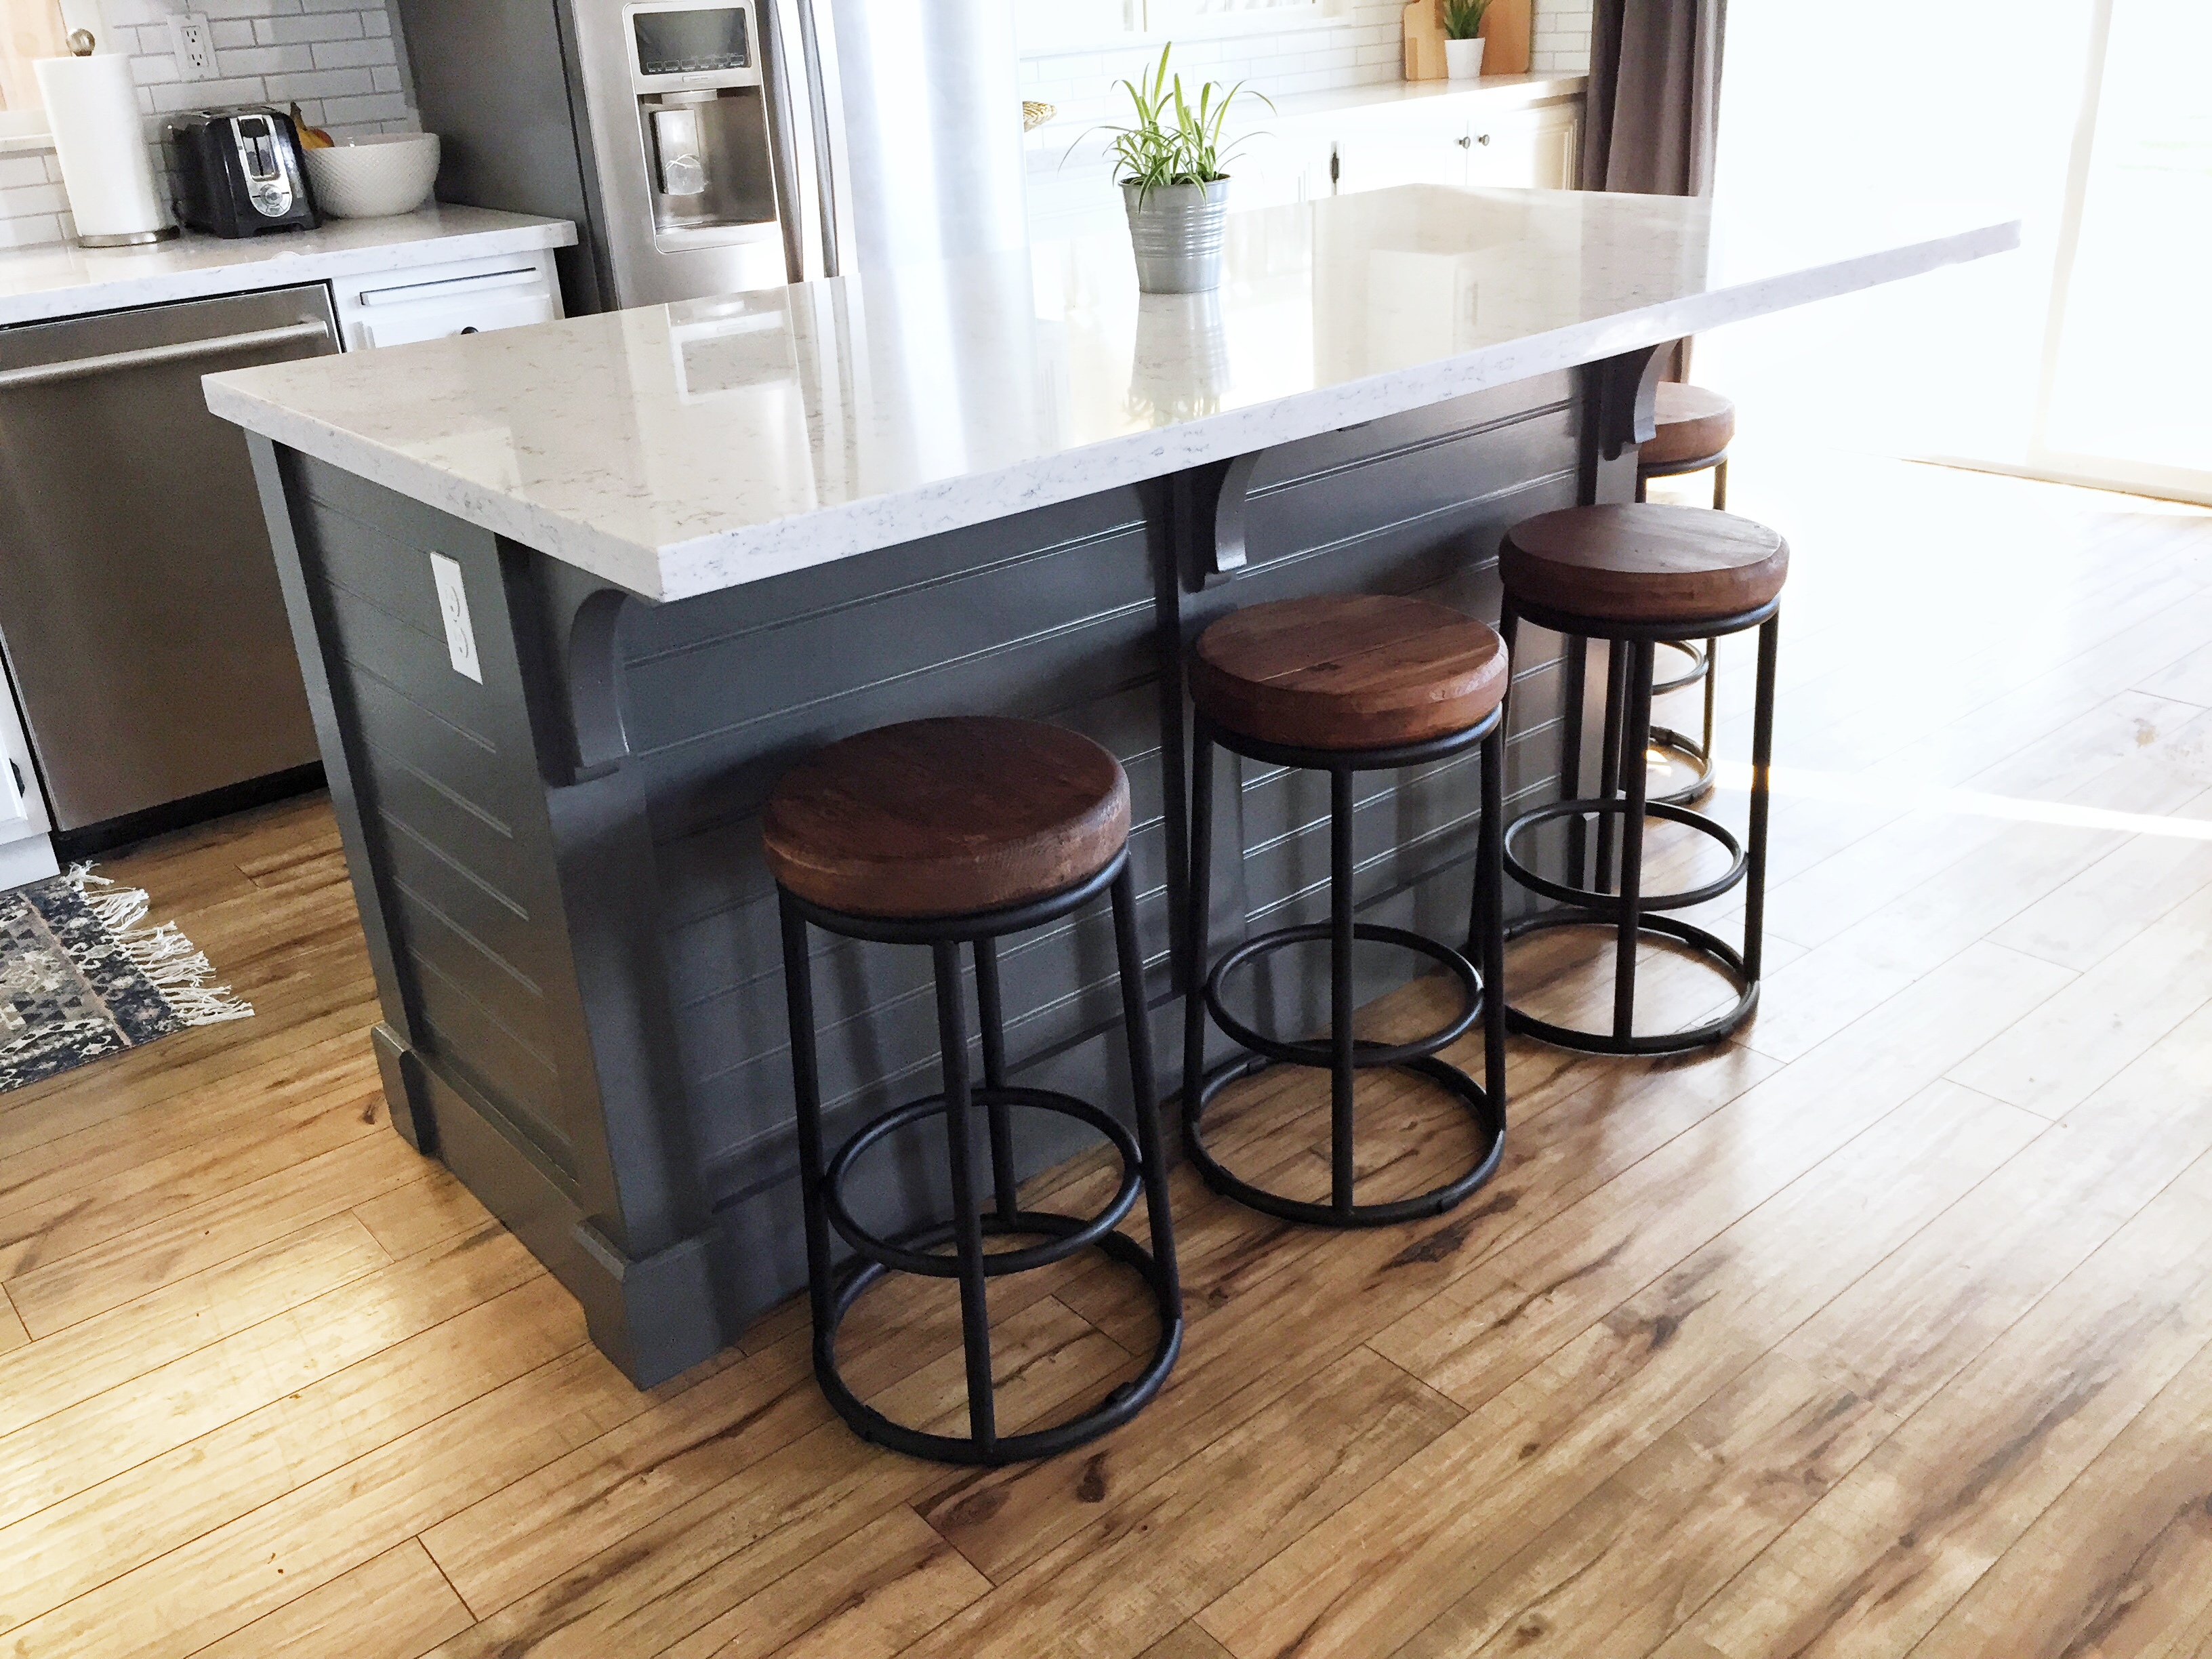 Large Kitchen Island Designs And Plans: Kitchen Island- Make It Yourself! Save Big $$$